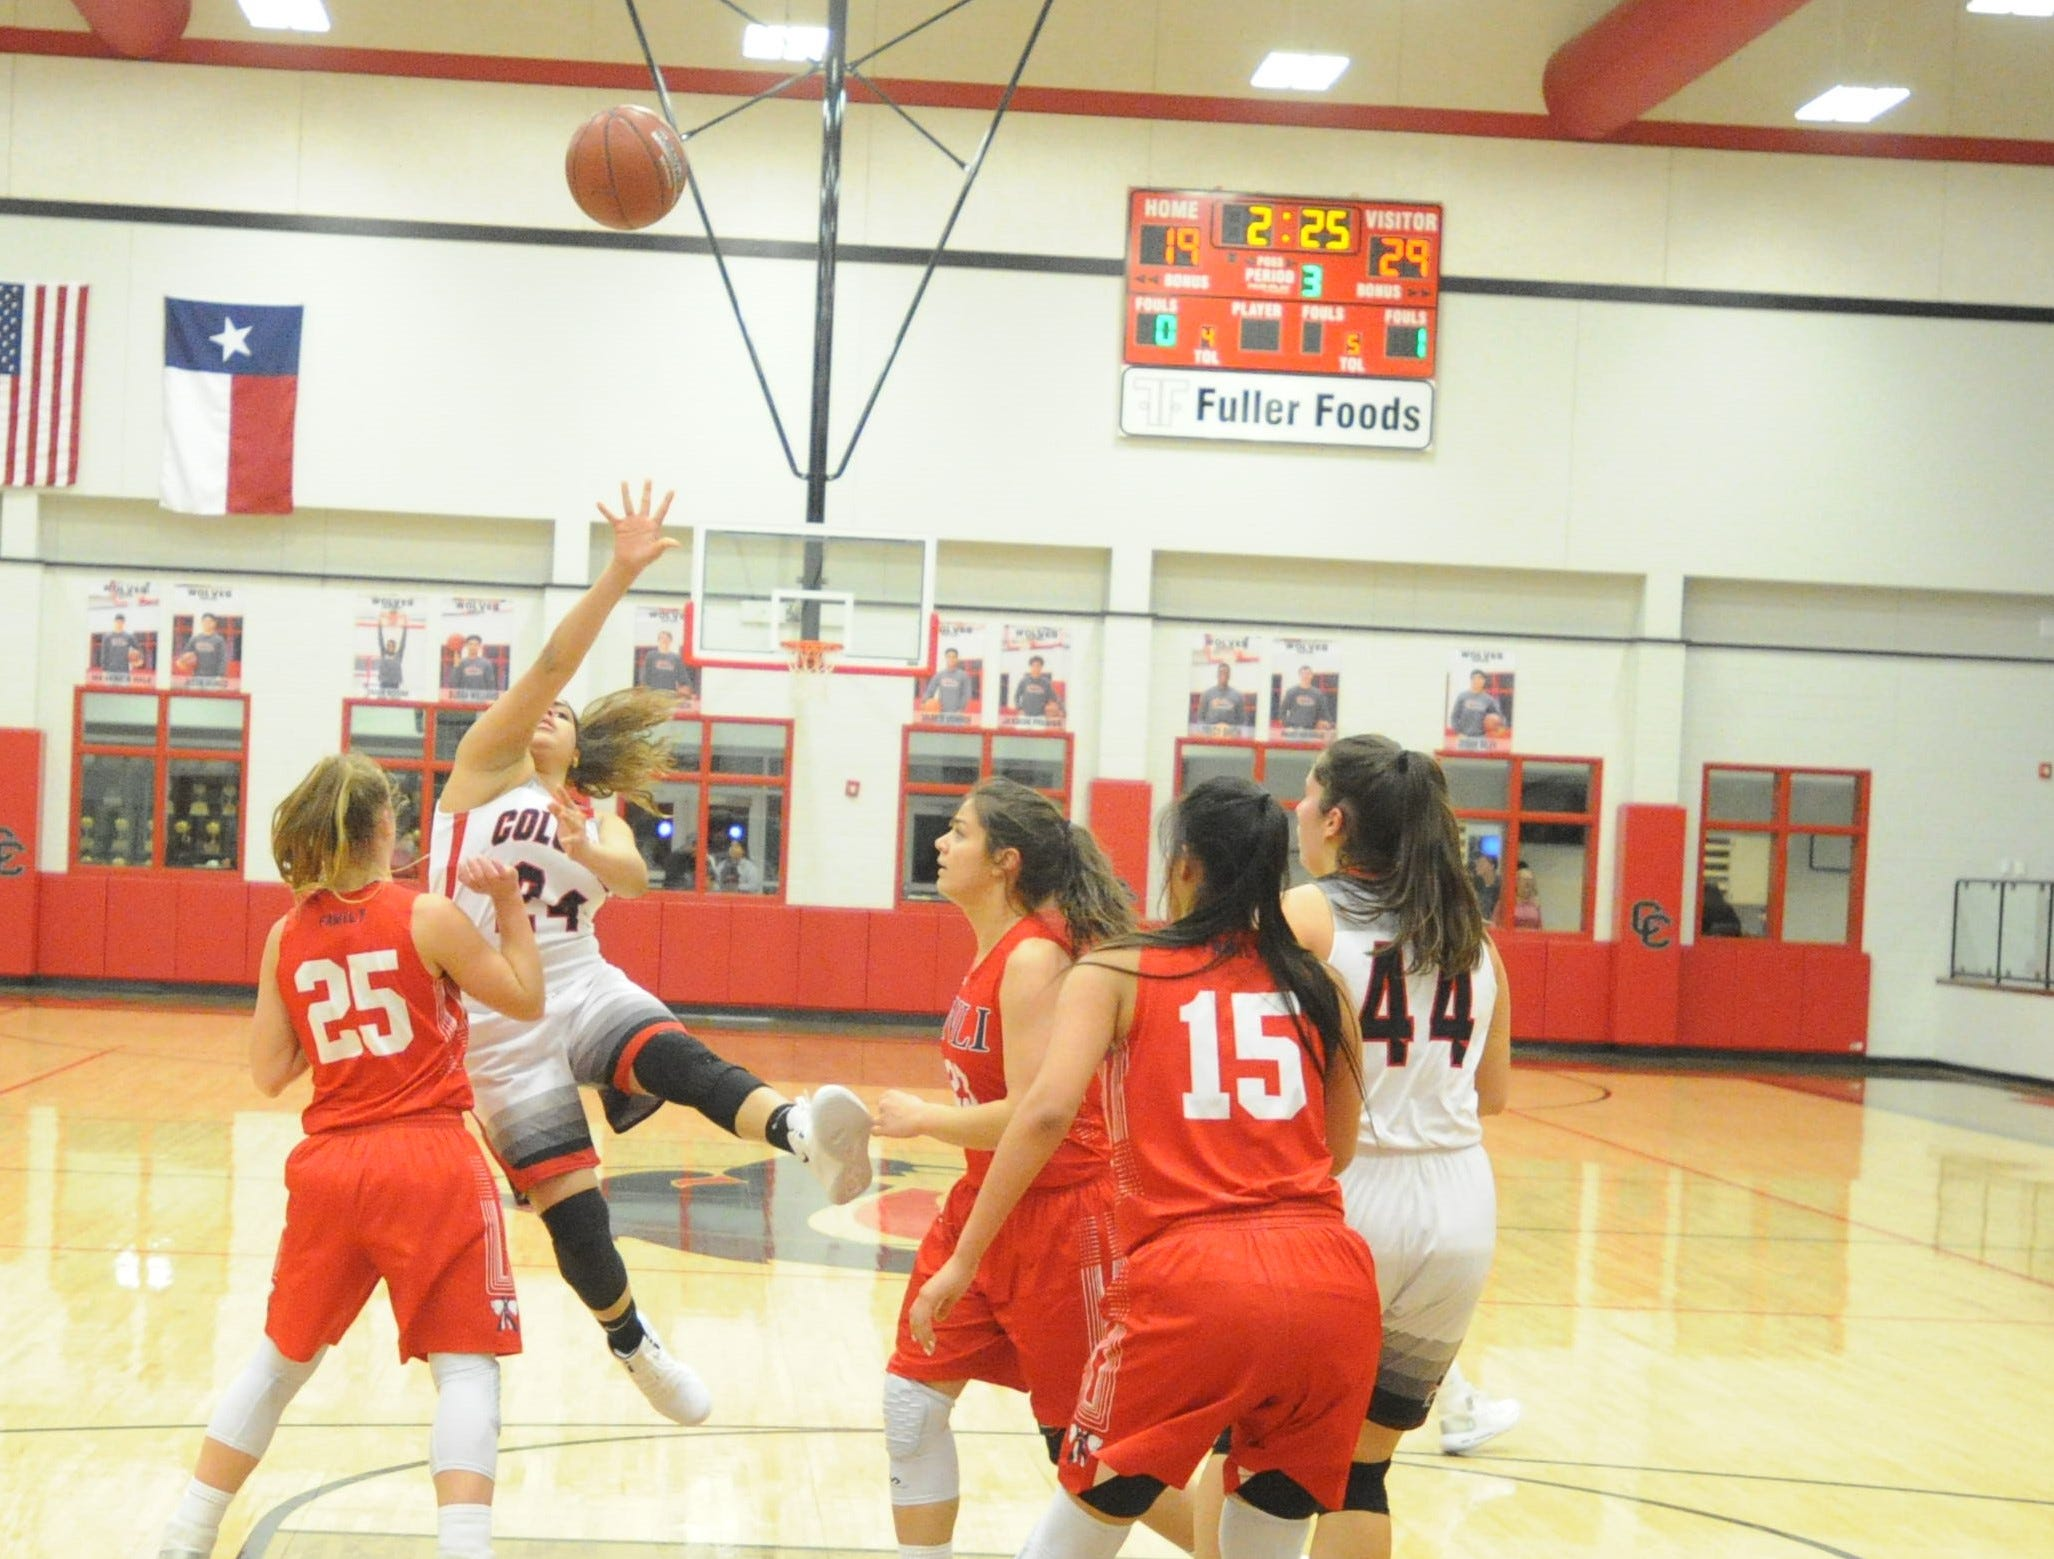 Colorado City's Alina Hernandez throws up a shot against Jim Ned. The Lady Indians topped the Lady Wolves 43-27 at Colorado High School on Jan. 15, 2019.